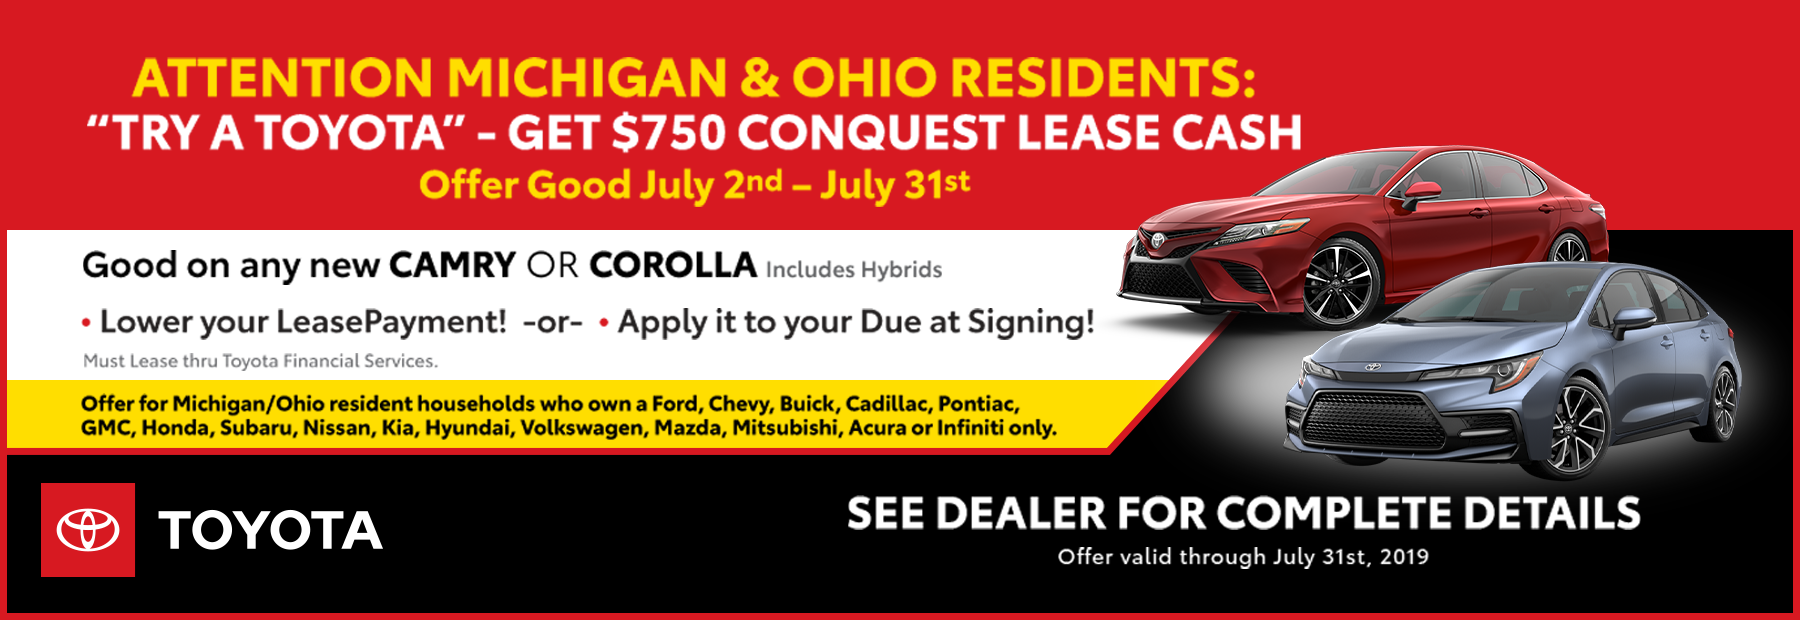 try-a-toyota-$750-conquest-cash-offer